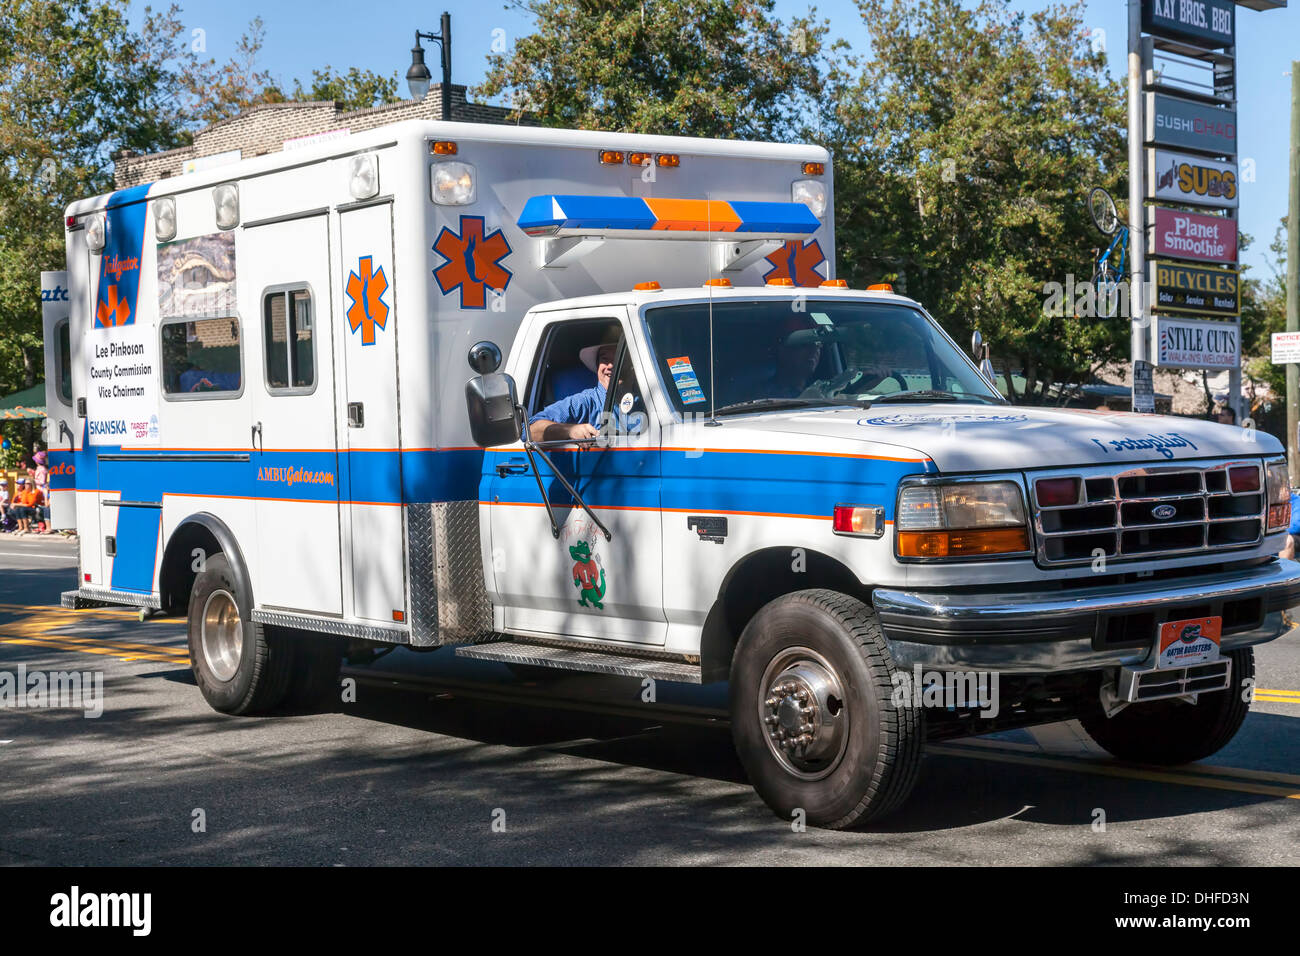 University of Florida ambulance in Homecoming Parade 2013 in Gainesville, Florida, USA. - Stock Image